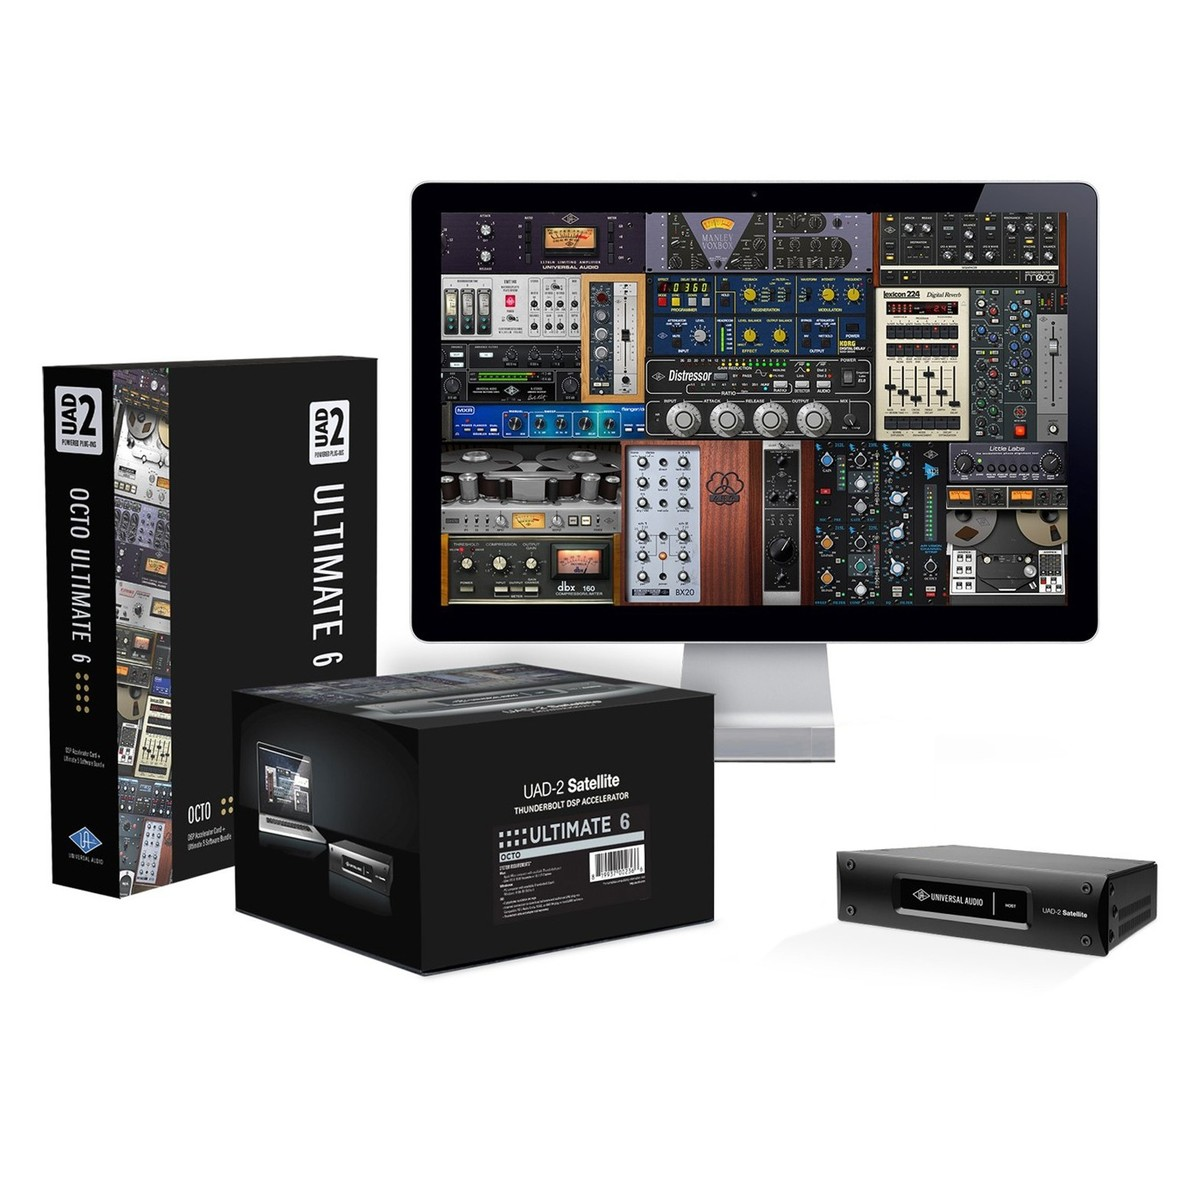 uad cambridge eq vst free download